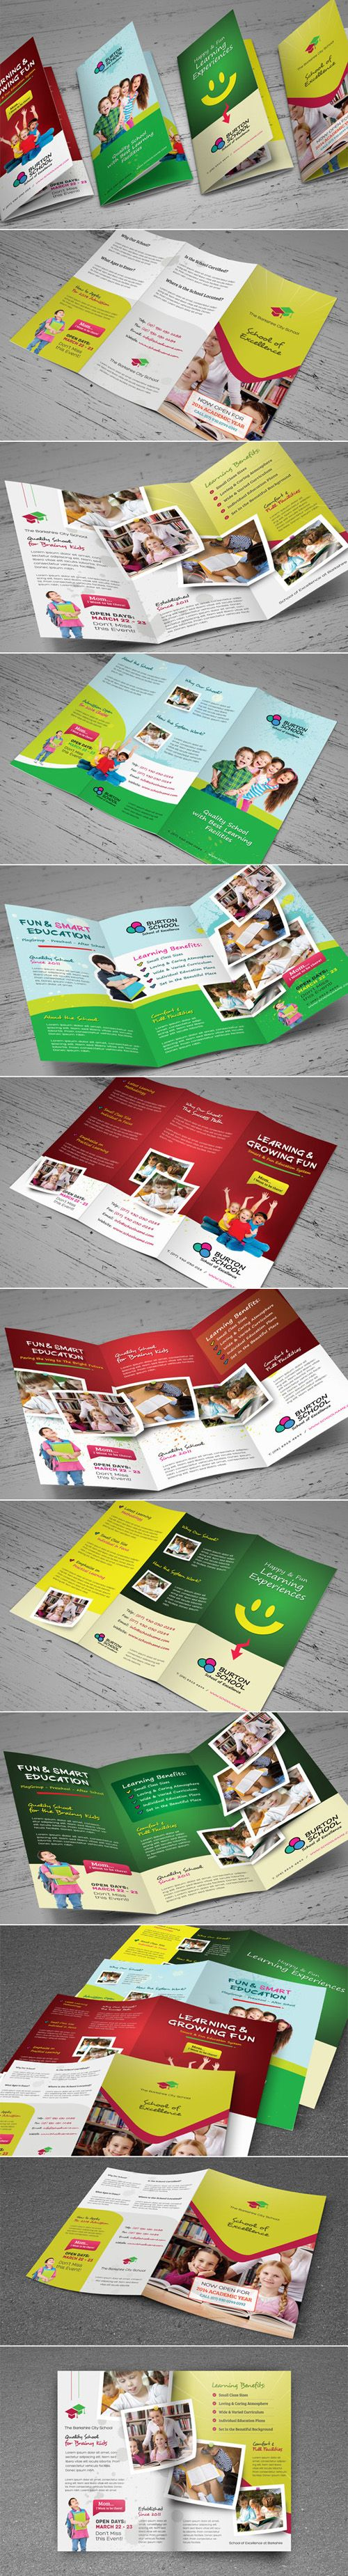 Educational Brochure for schools Brochures for your Professional Corporate…